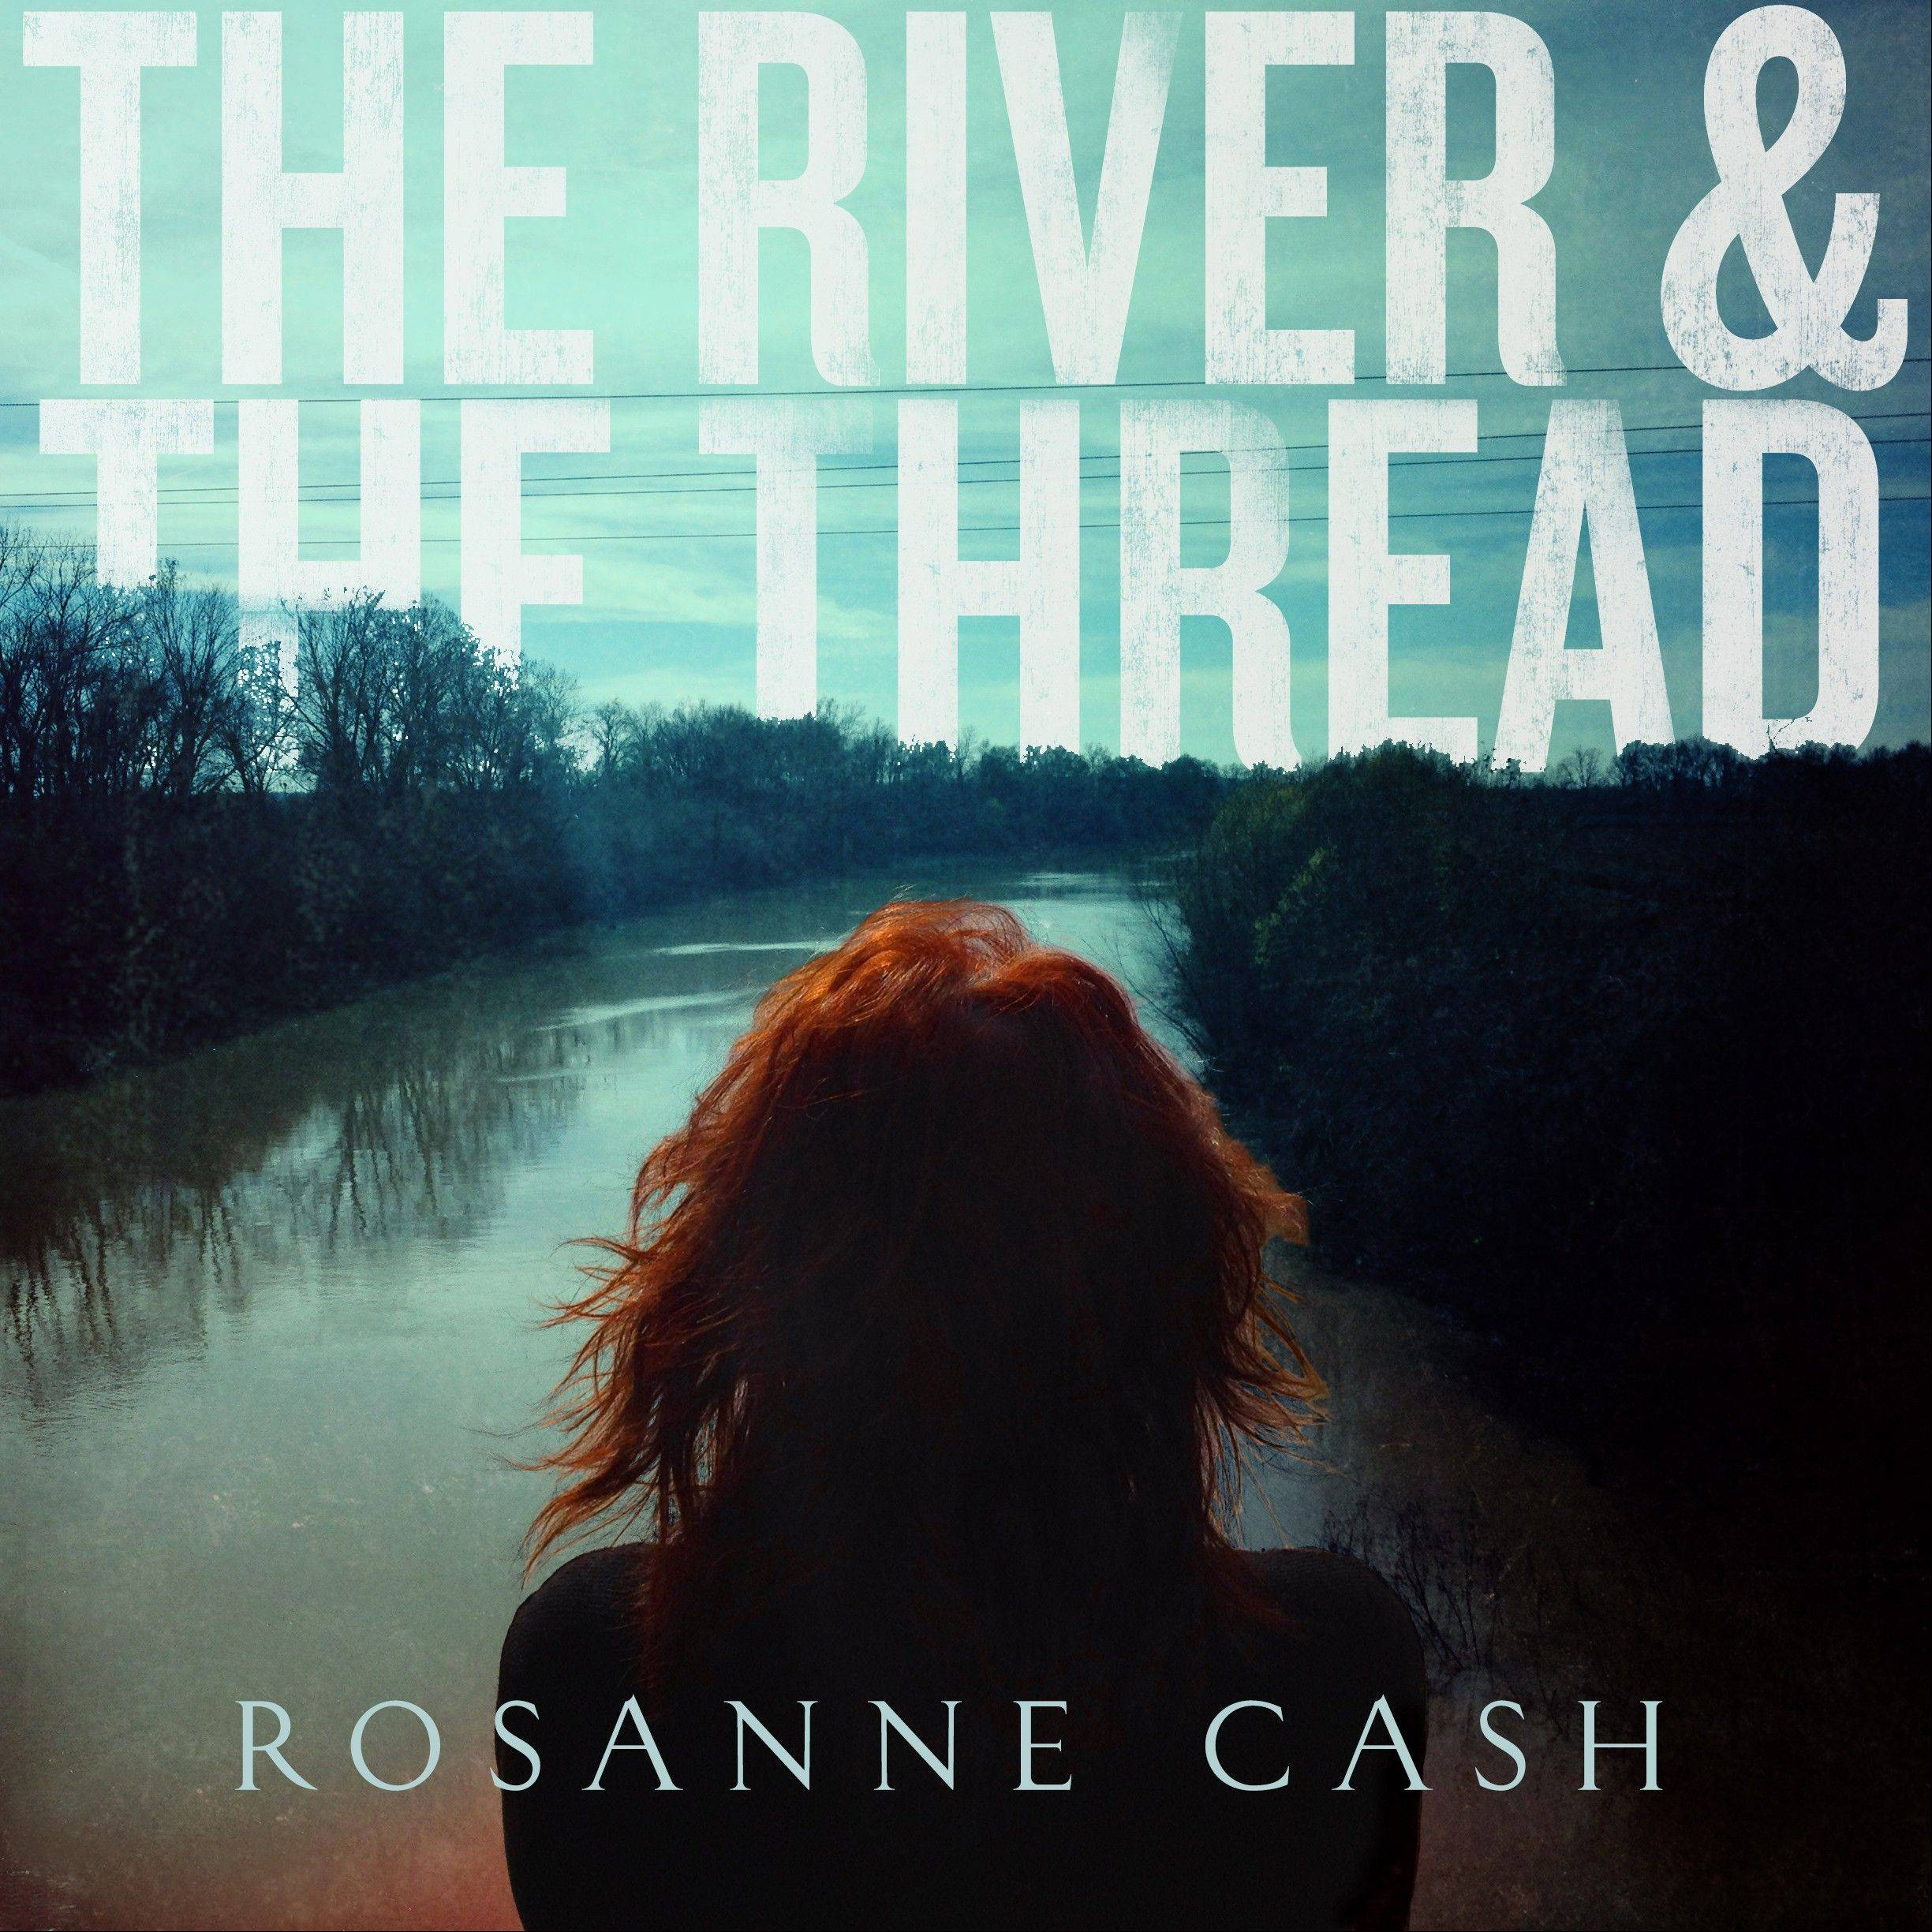 Rosanne Cash explores her Southern roots